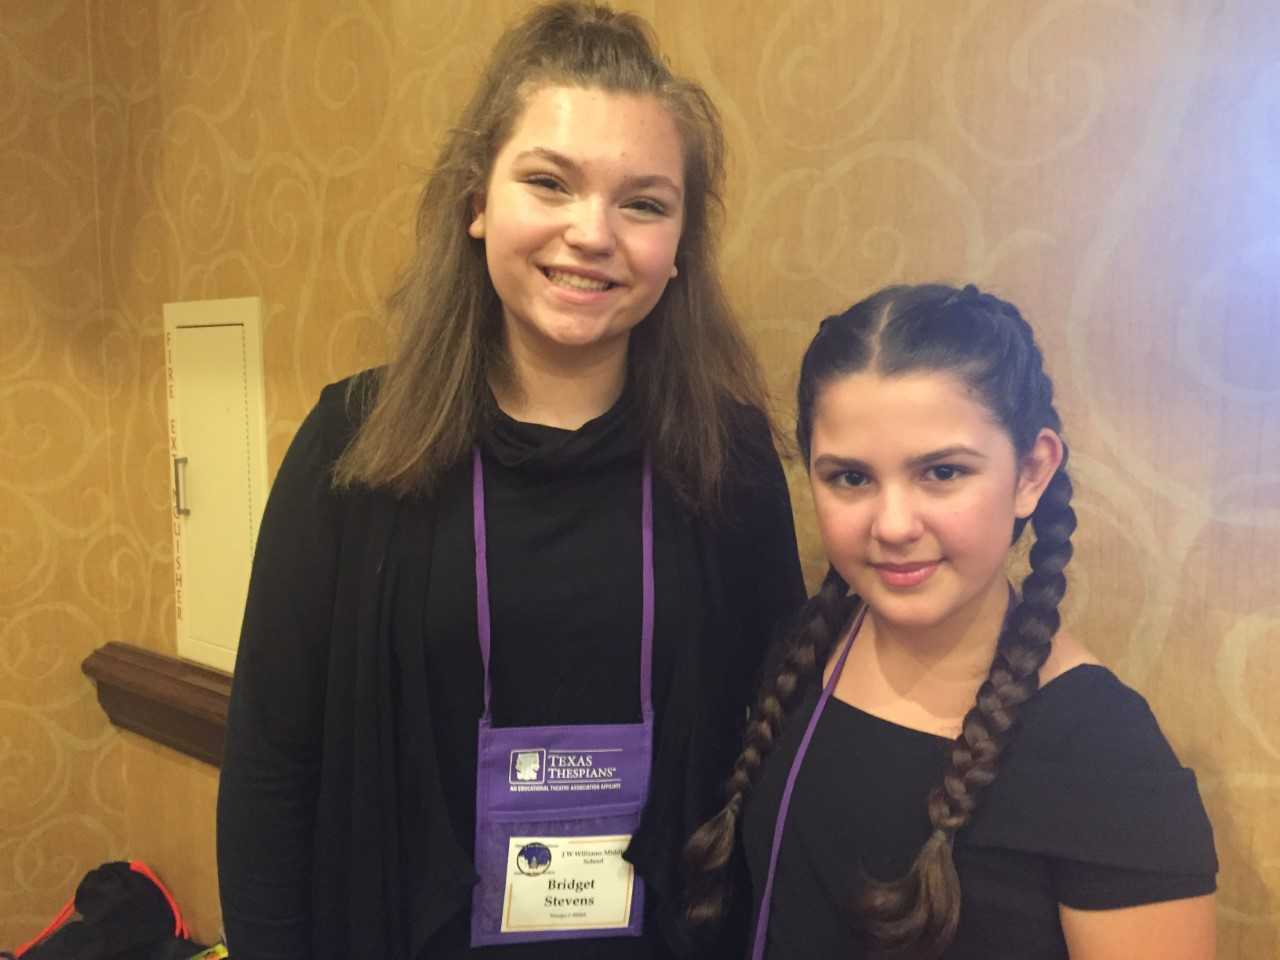 Williams Middle School Theatre Students Compete in Texas Thespians Festival